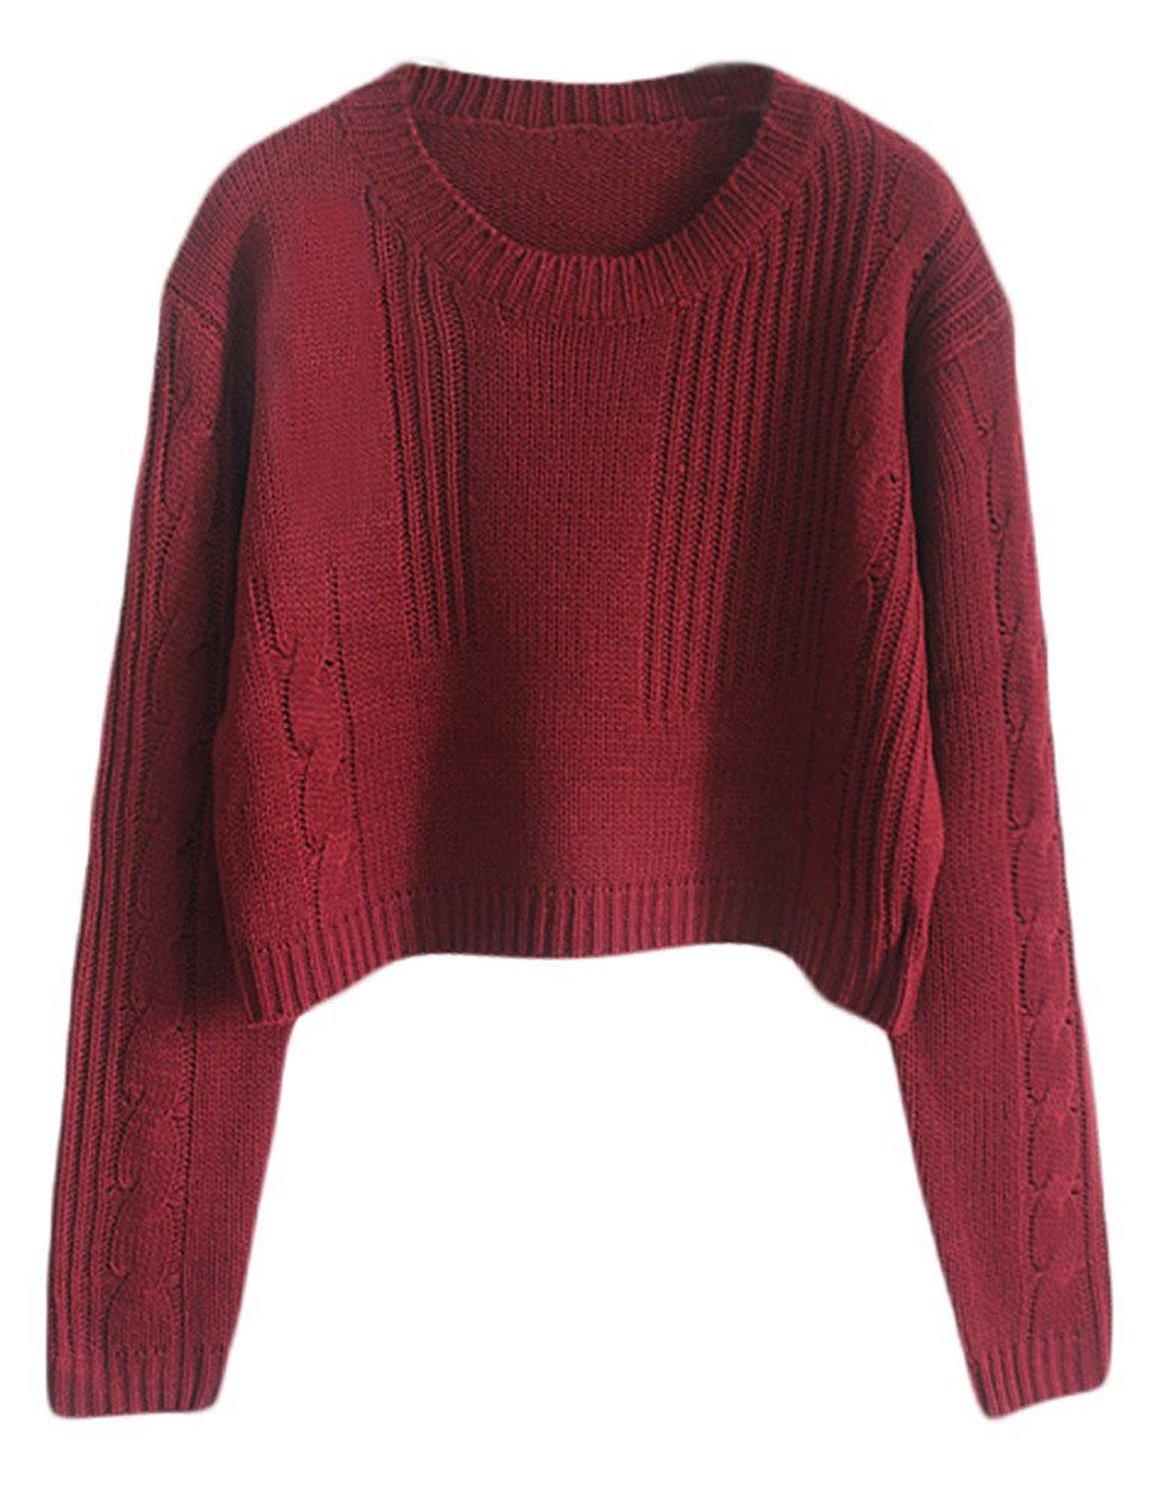 Women Loose Cable Knit Crop Jumper Sweater Burgundy at Amazon ...